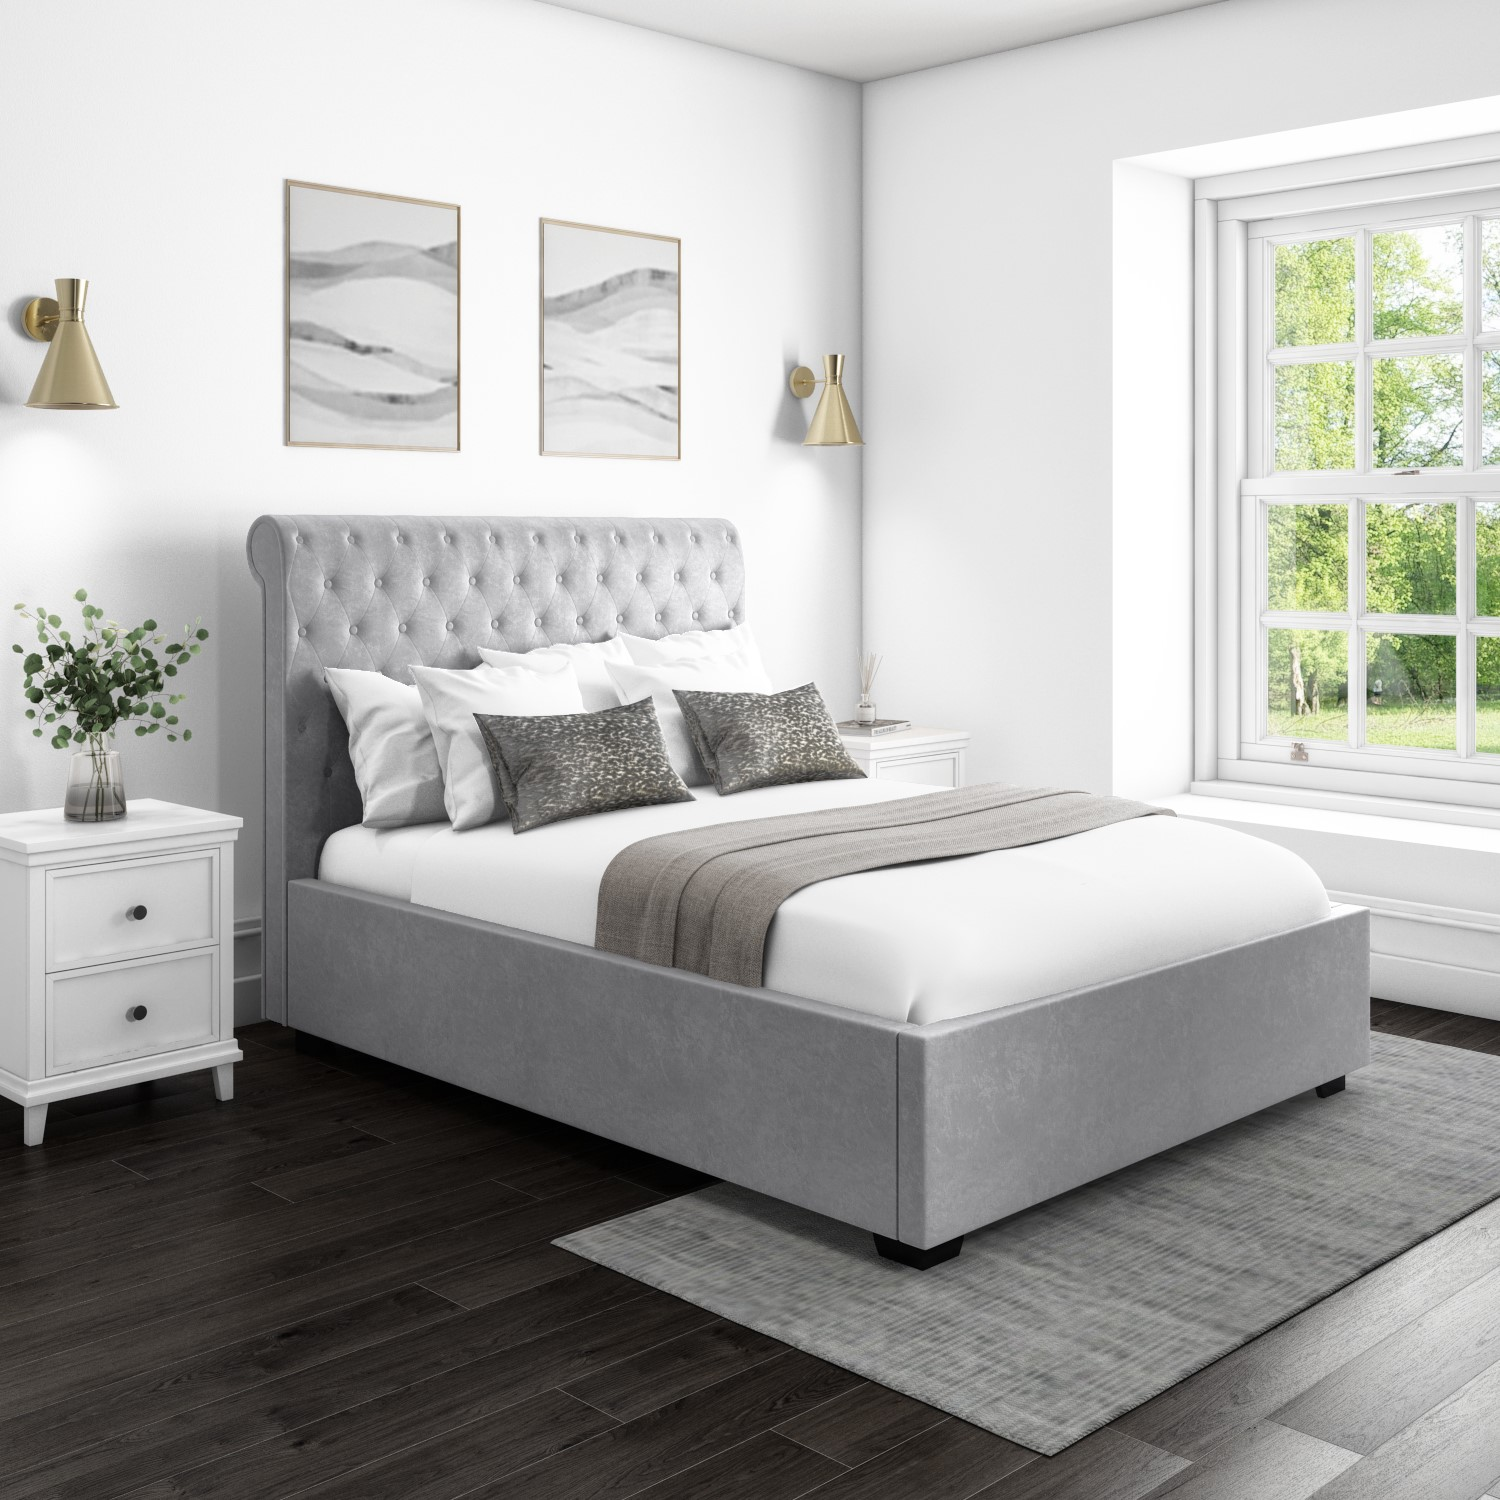 Picture of: Buy Discounted Cheap Ottoman And Storage Beds On Sale